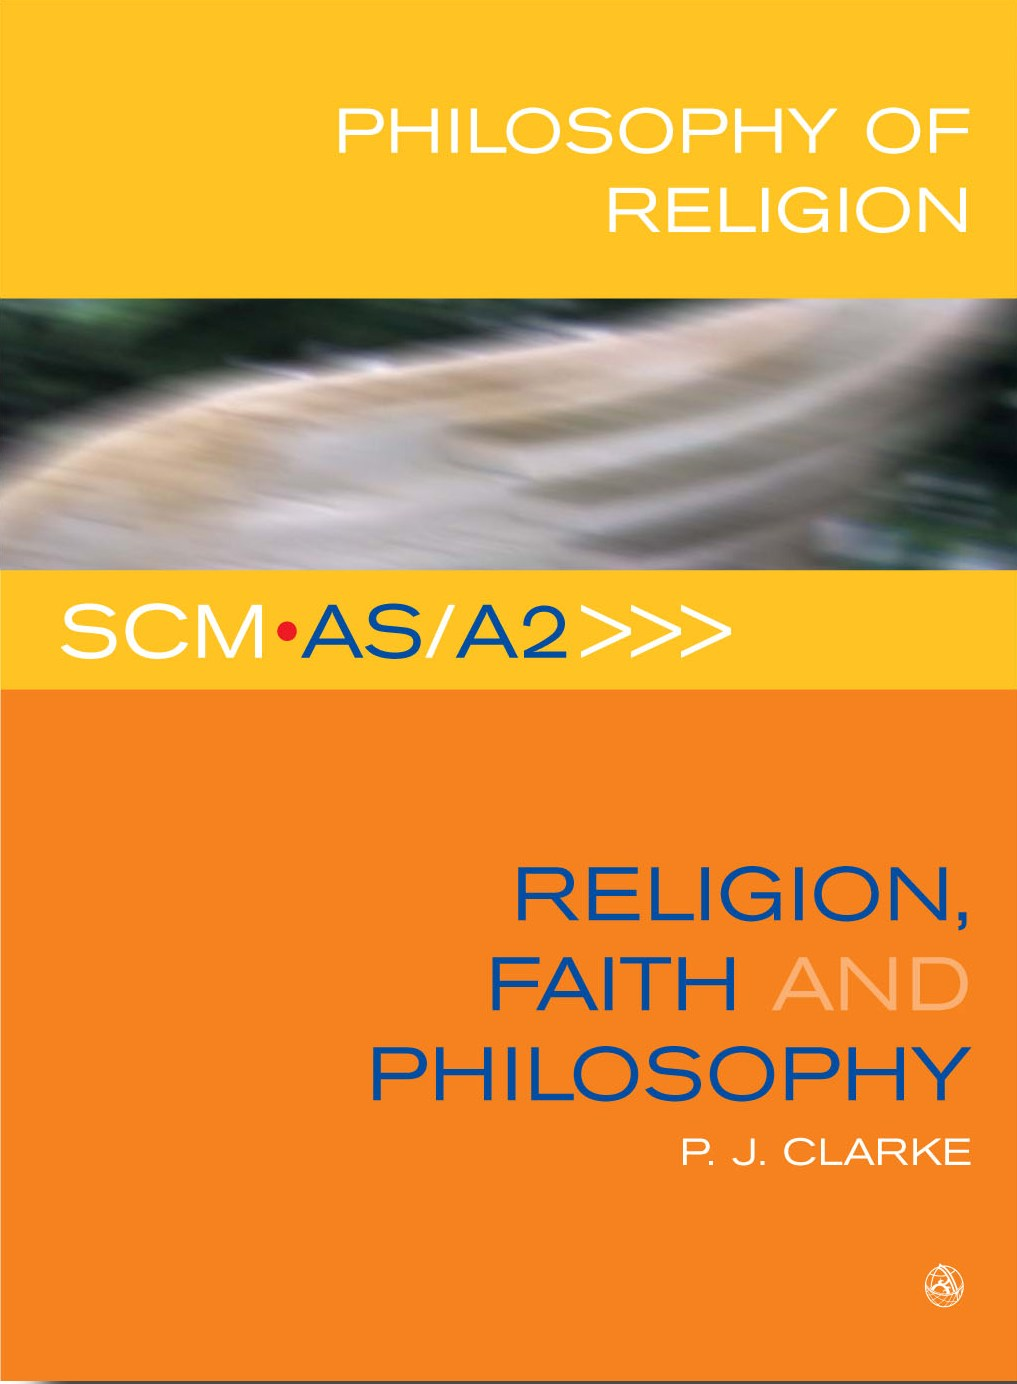 SCM AS/A2 Religion, Faith and Philosophy